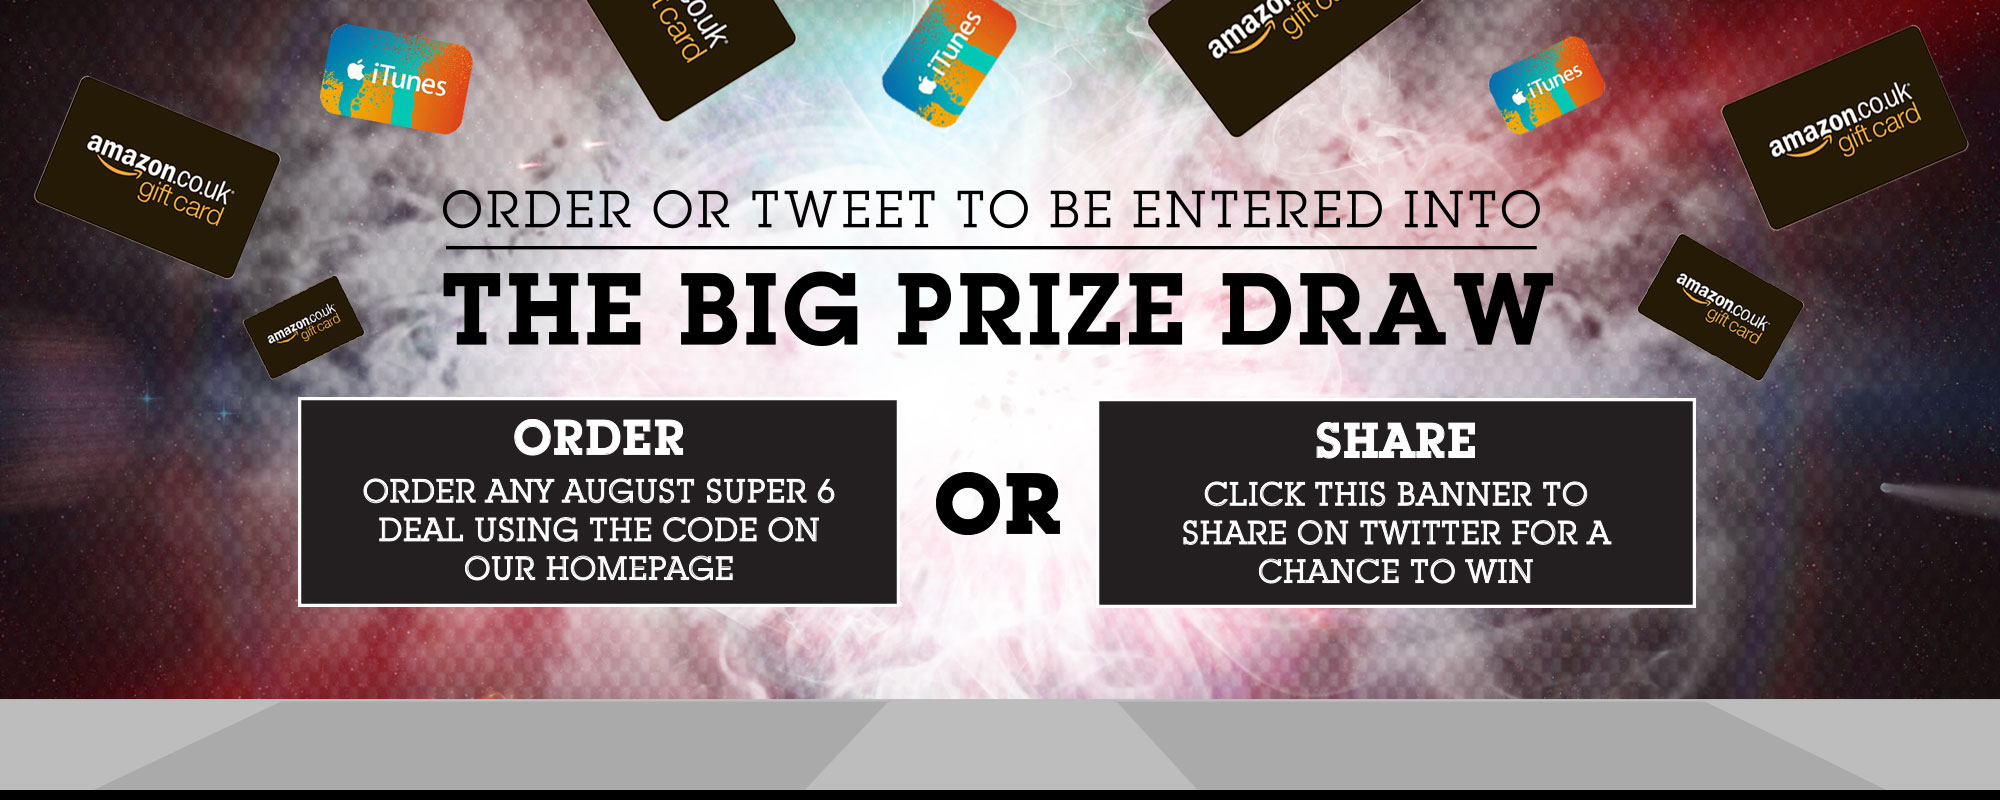 Order or tweet to be entered into the big prize draw